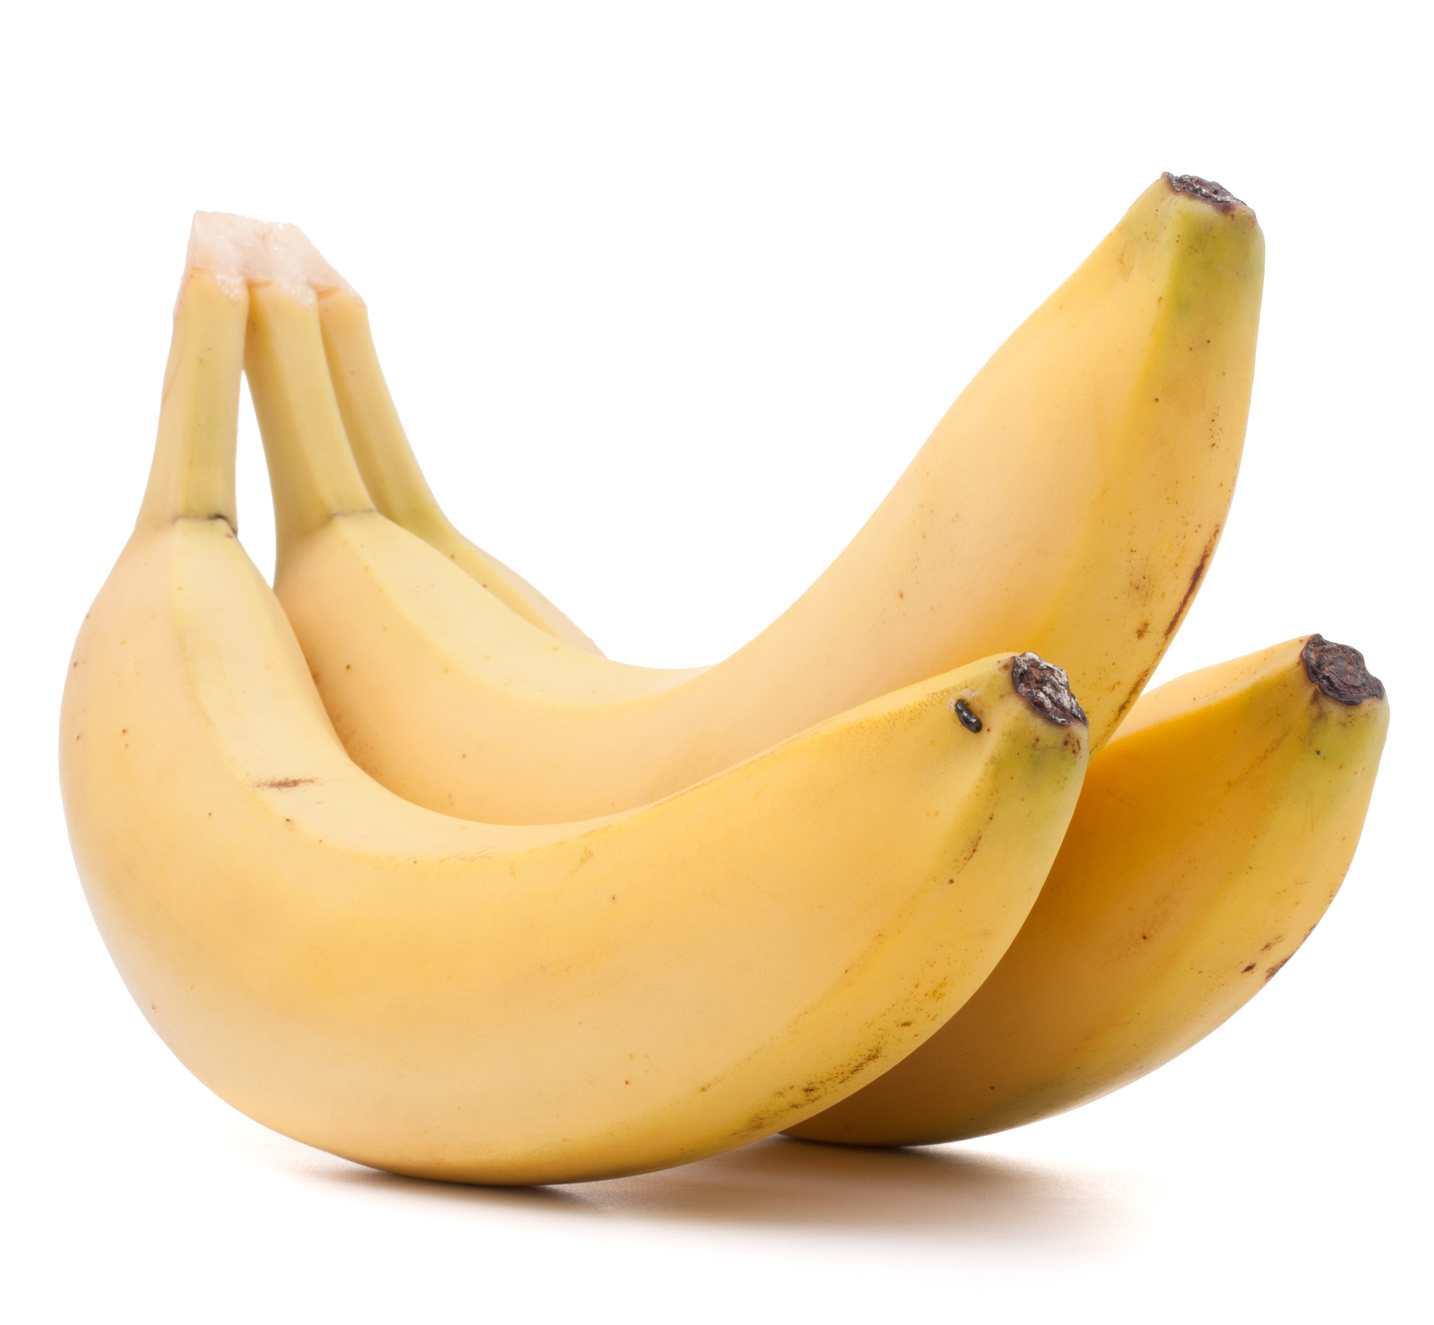 Bananas, and many other fruits, are an excellent source of dietary fiber.